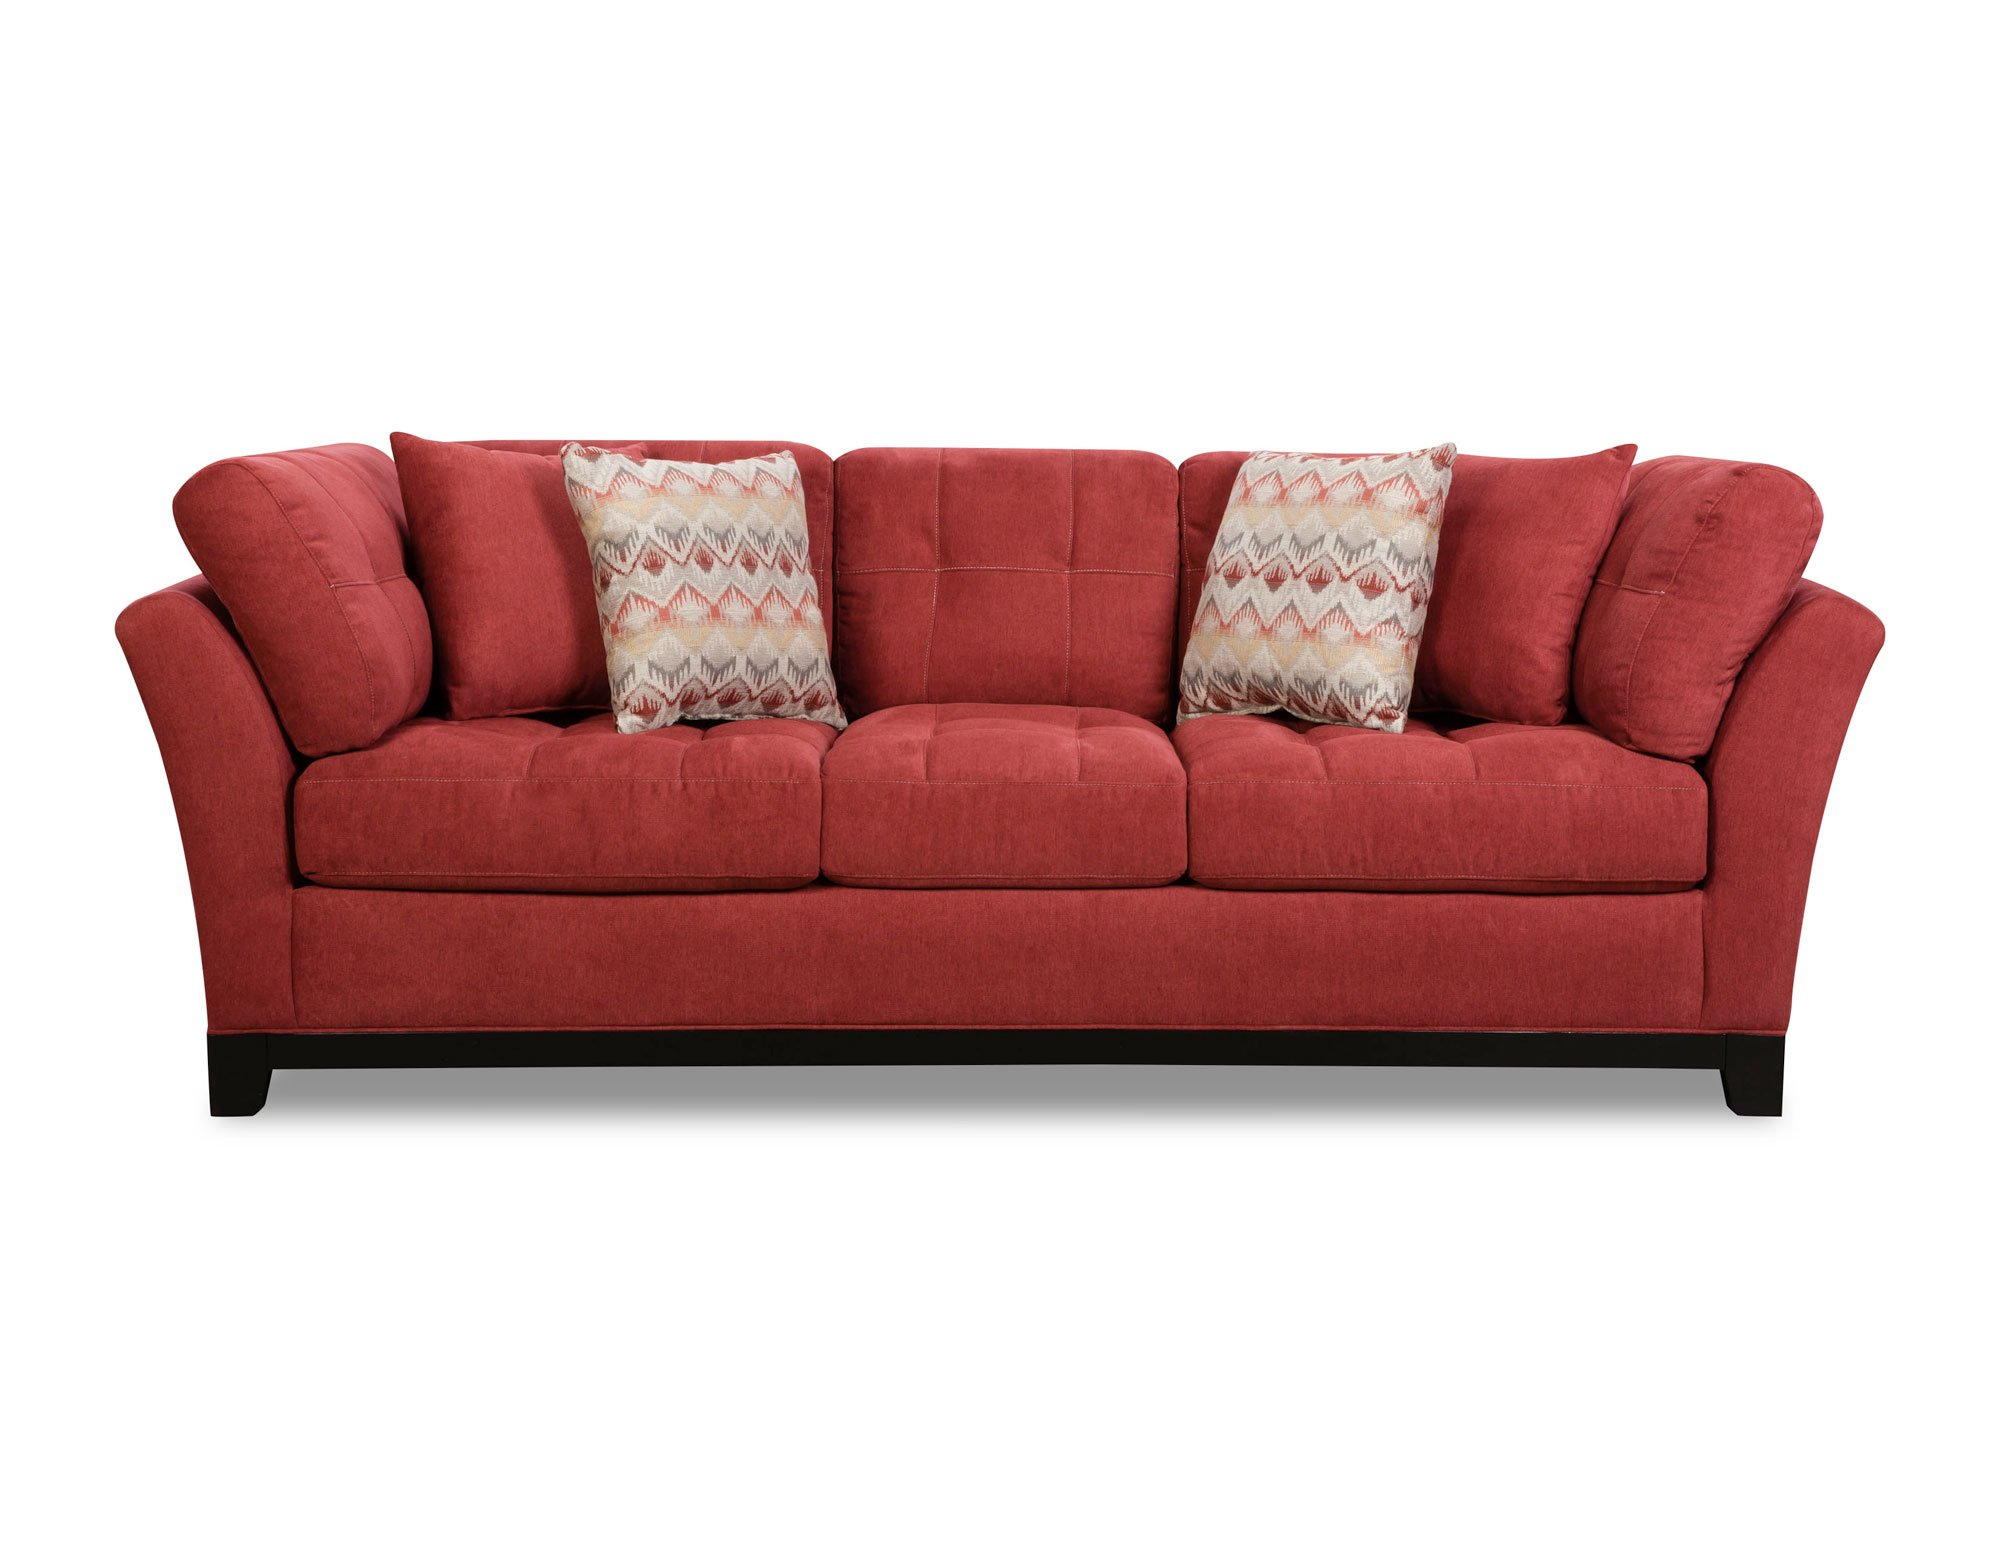 burgundy rcwilley sectional reclining view furniture living brant rc leather piece sectionals match willey jsp room